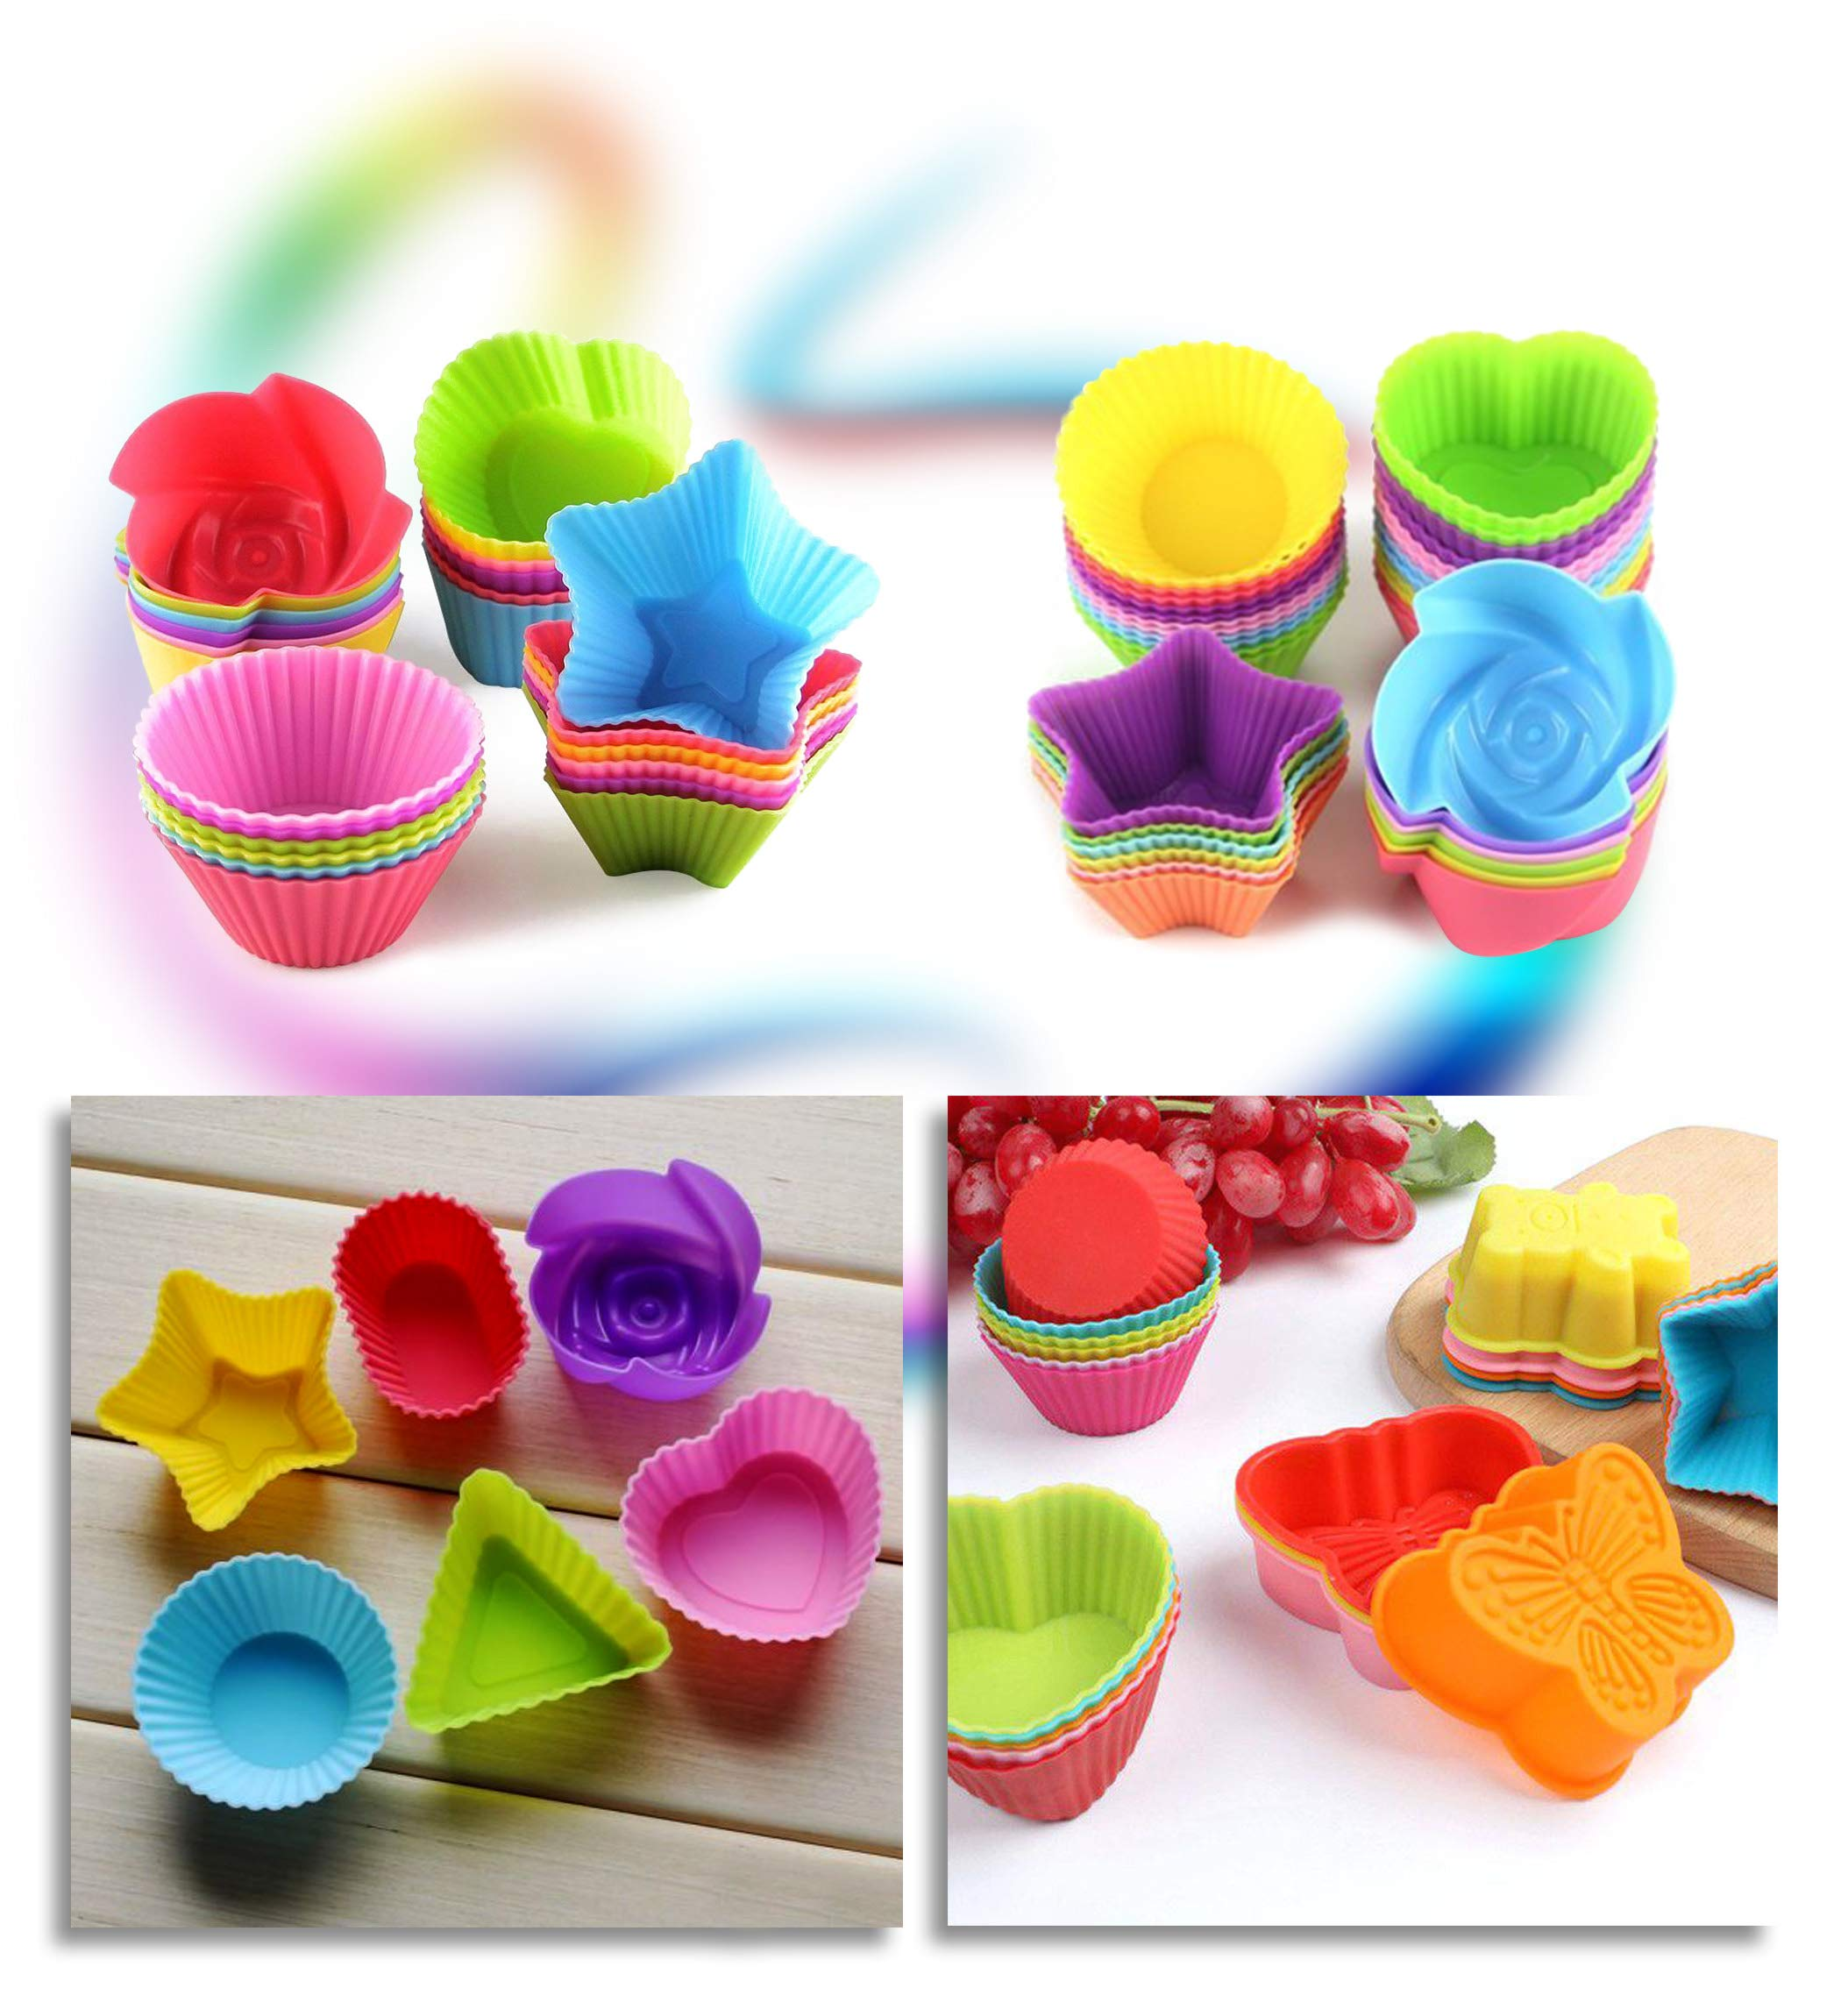 Cupcake Baking Cup Molds Bundle Easy Clean Pastry Liners 48 Nonstick Reusable Silicone Muffin Molds with Icing Pen Cupcake & Cake Decorating Pen Set by Kitchen Krush (Image #5)